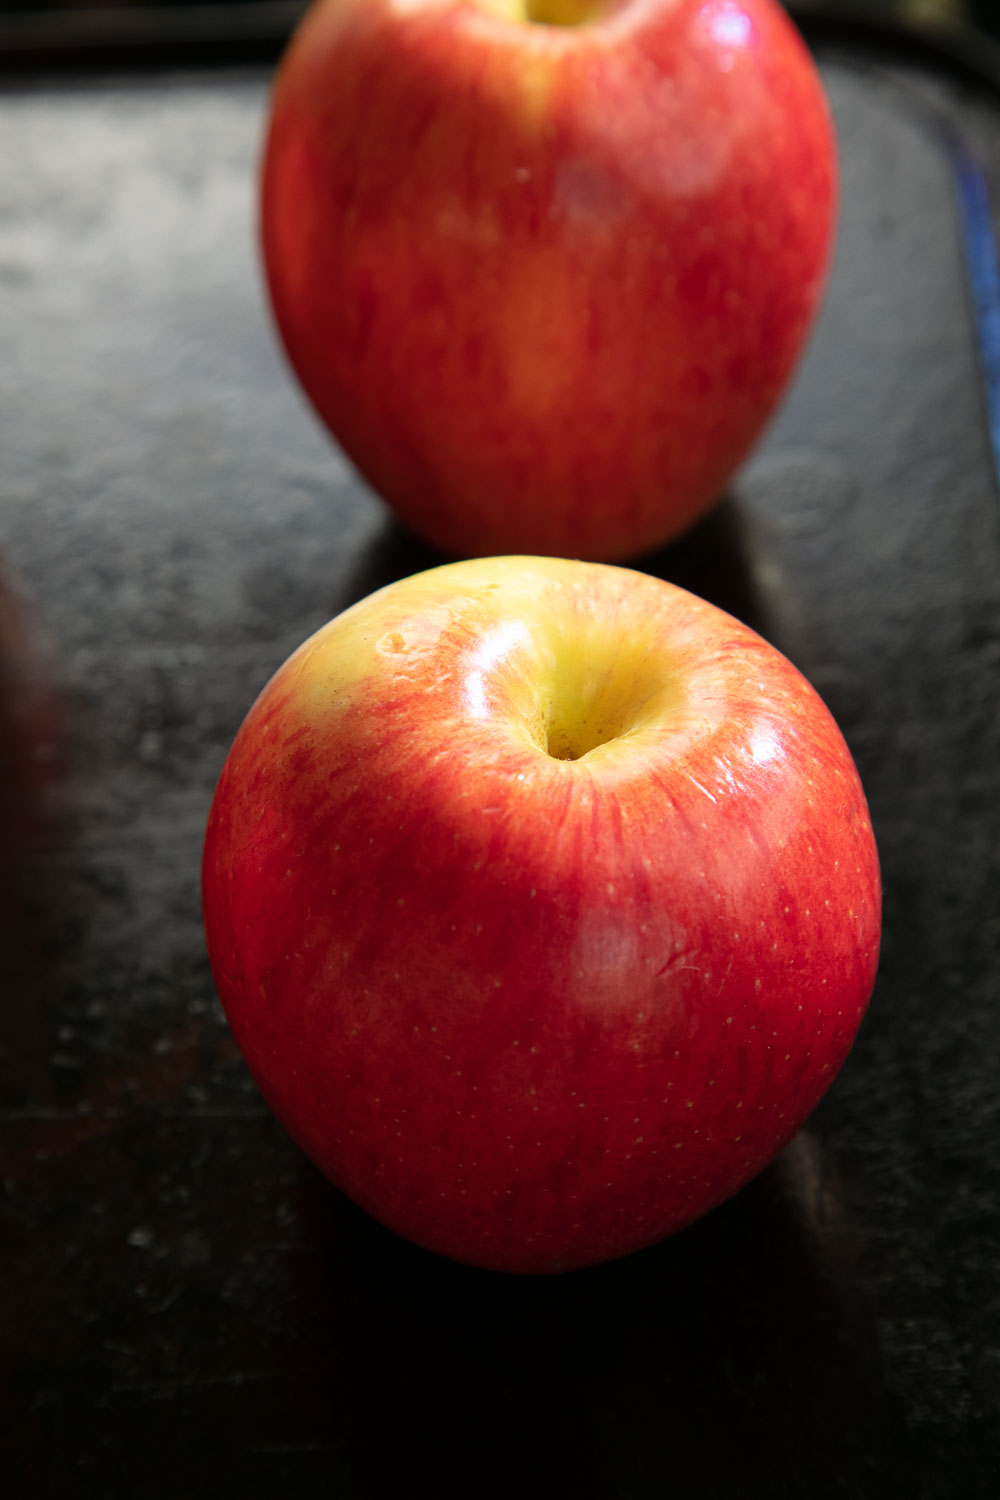 Red Apples on a baking tray.